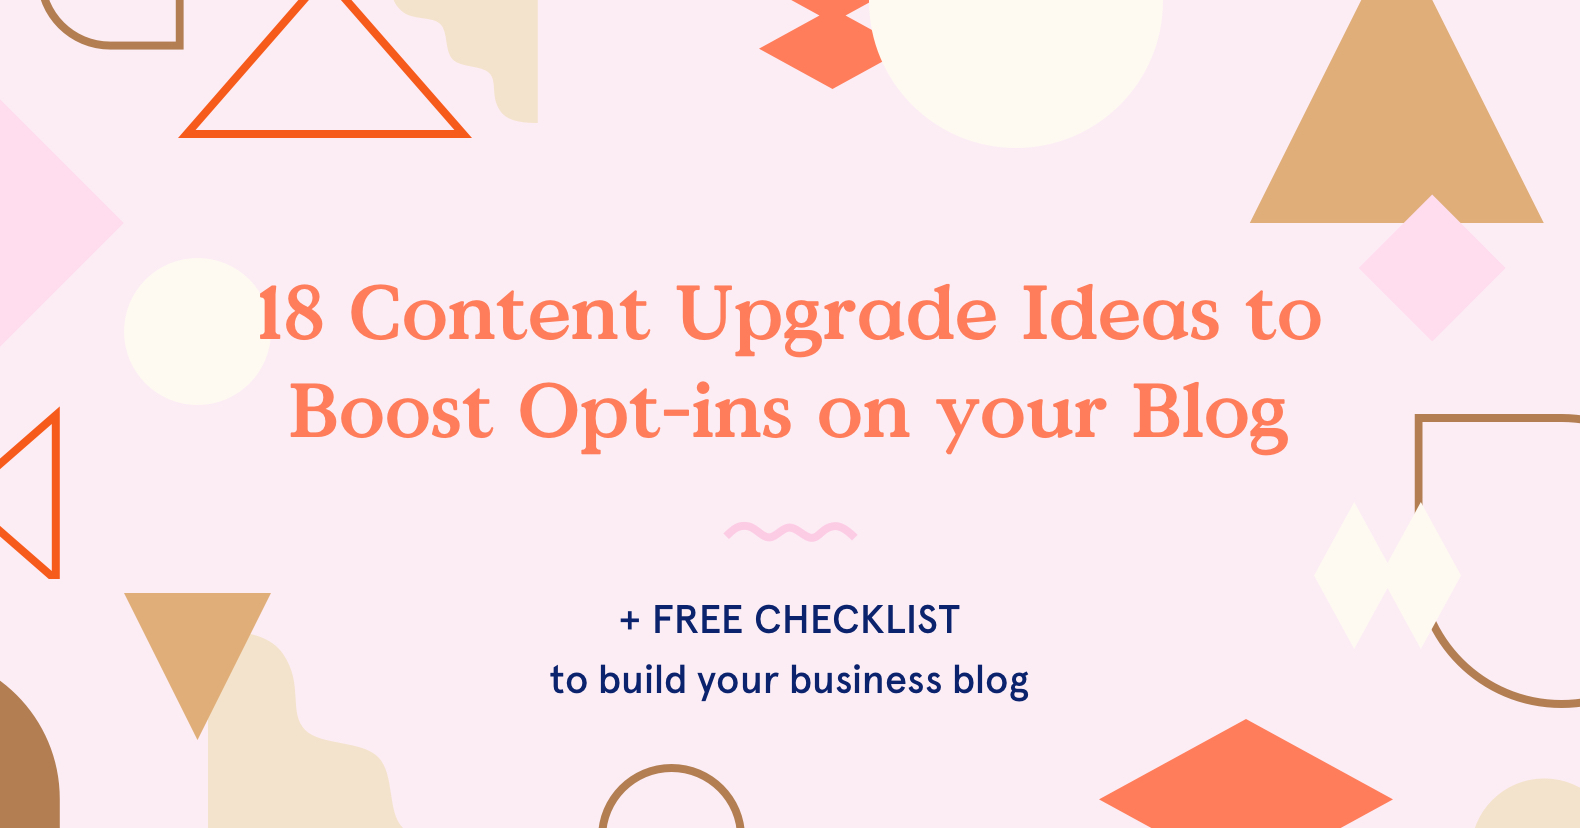 18 Content Upgrade Ideas to Make the Most of Even a Low-Traffic Blog